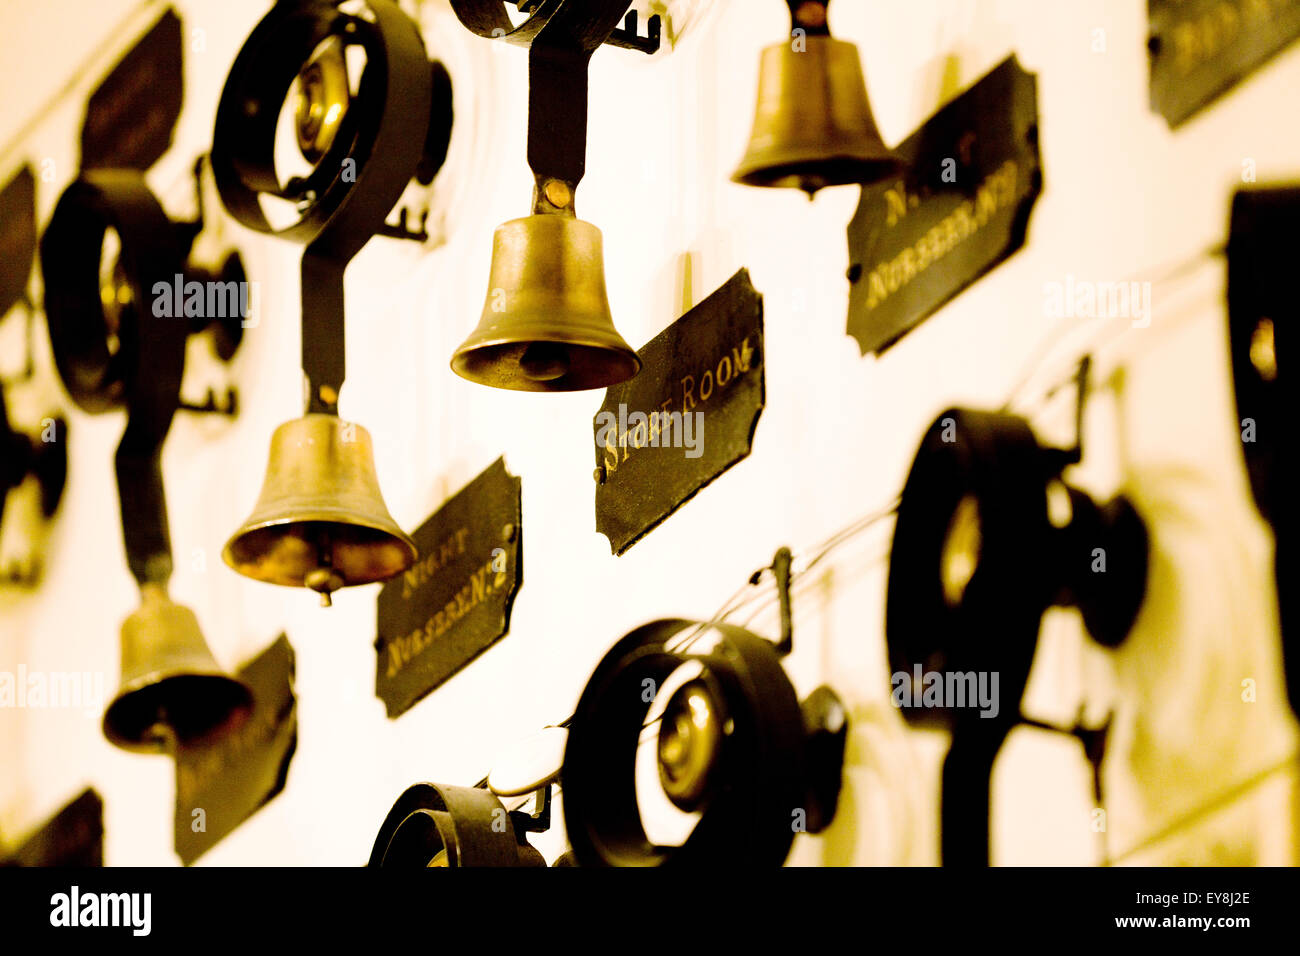 A row of servants bells suspended in the hallway of an English stately home. Historical used to summon serving staff - Stock Image